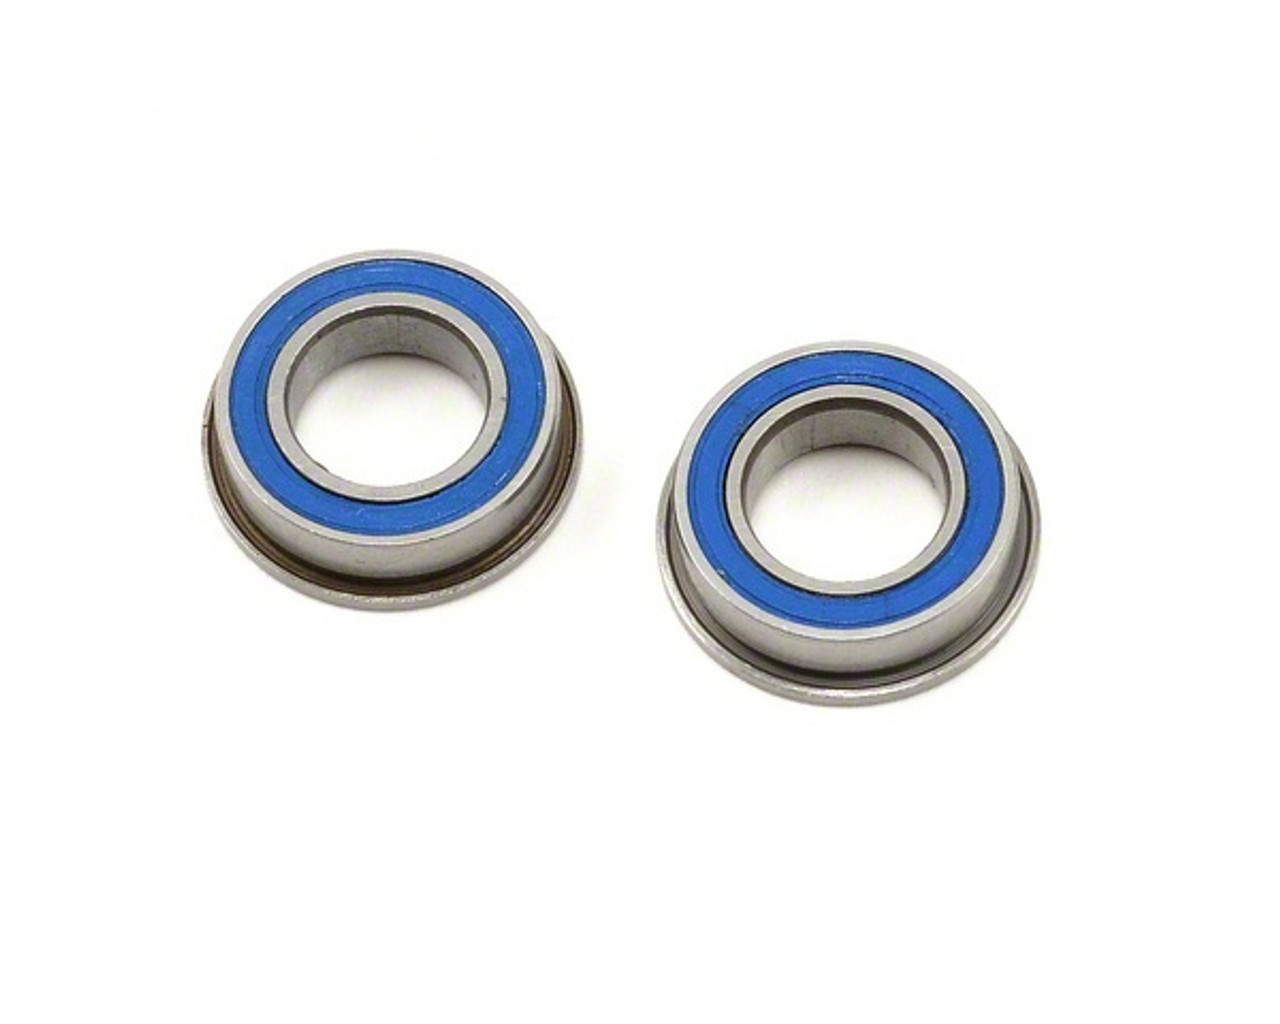 Bearings Metric Series 6x10x3 MM Flanged Rubber Sealed (2 Pack) (MF106 2RS)